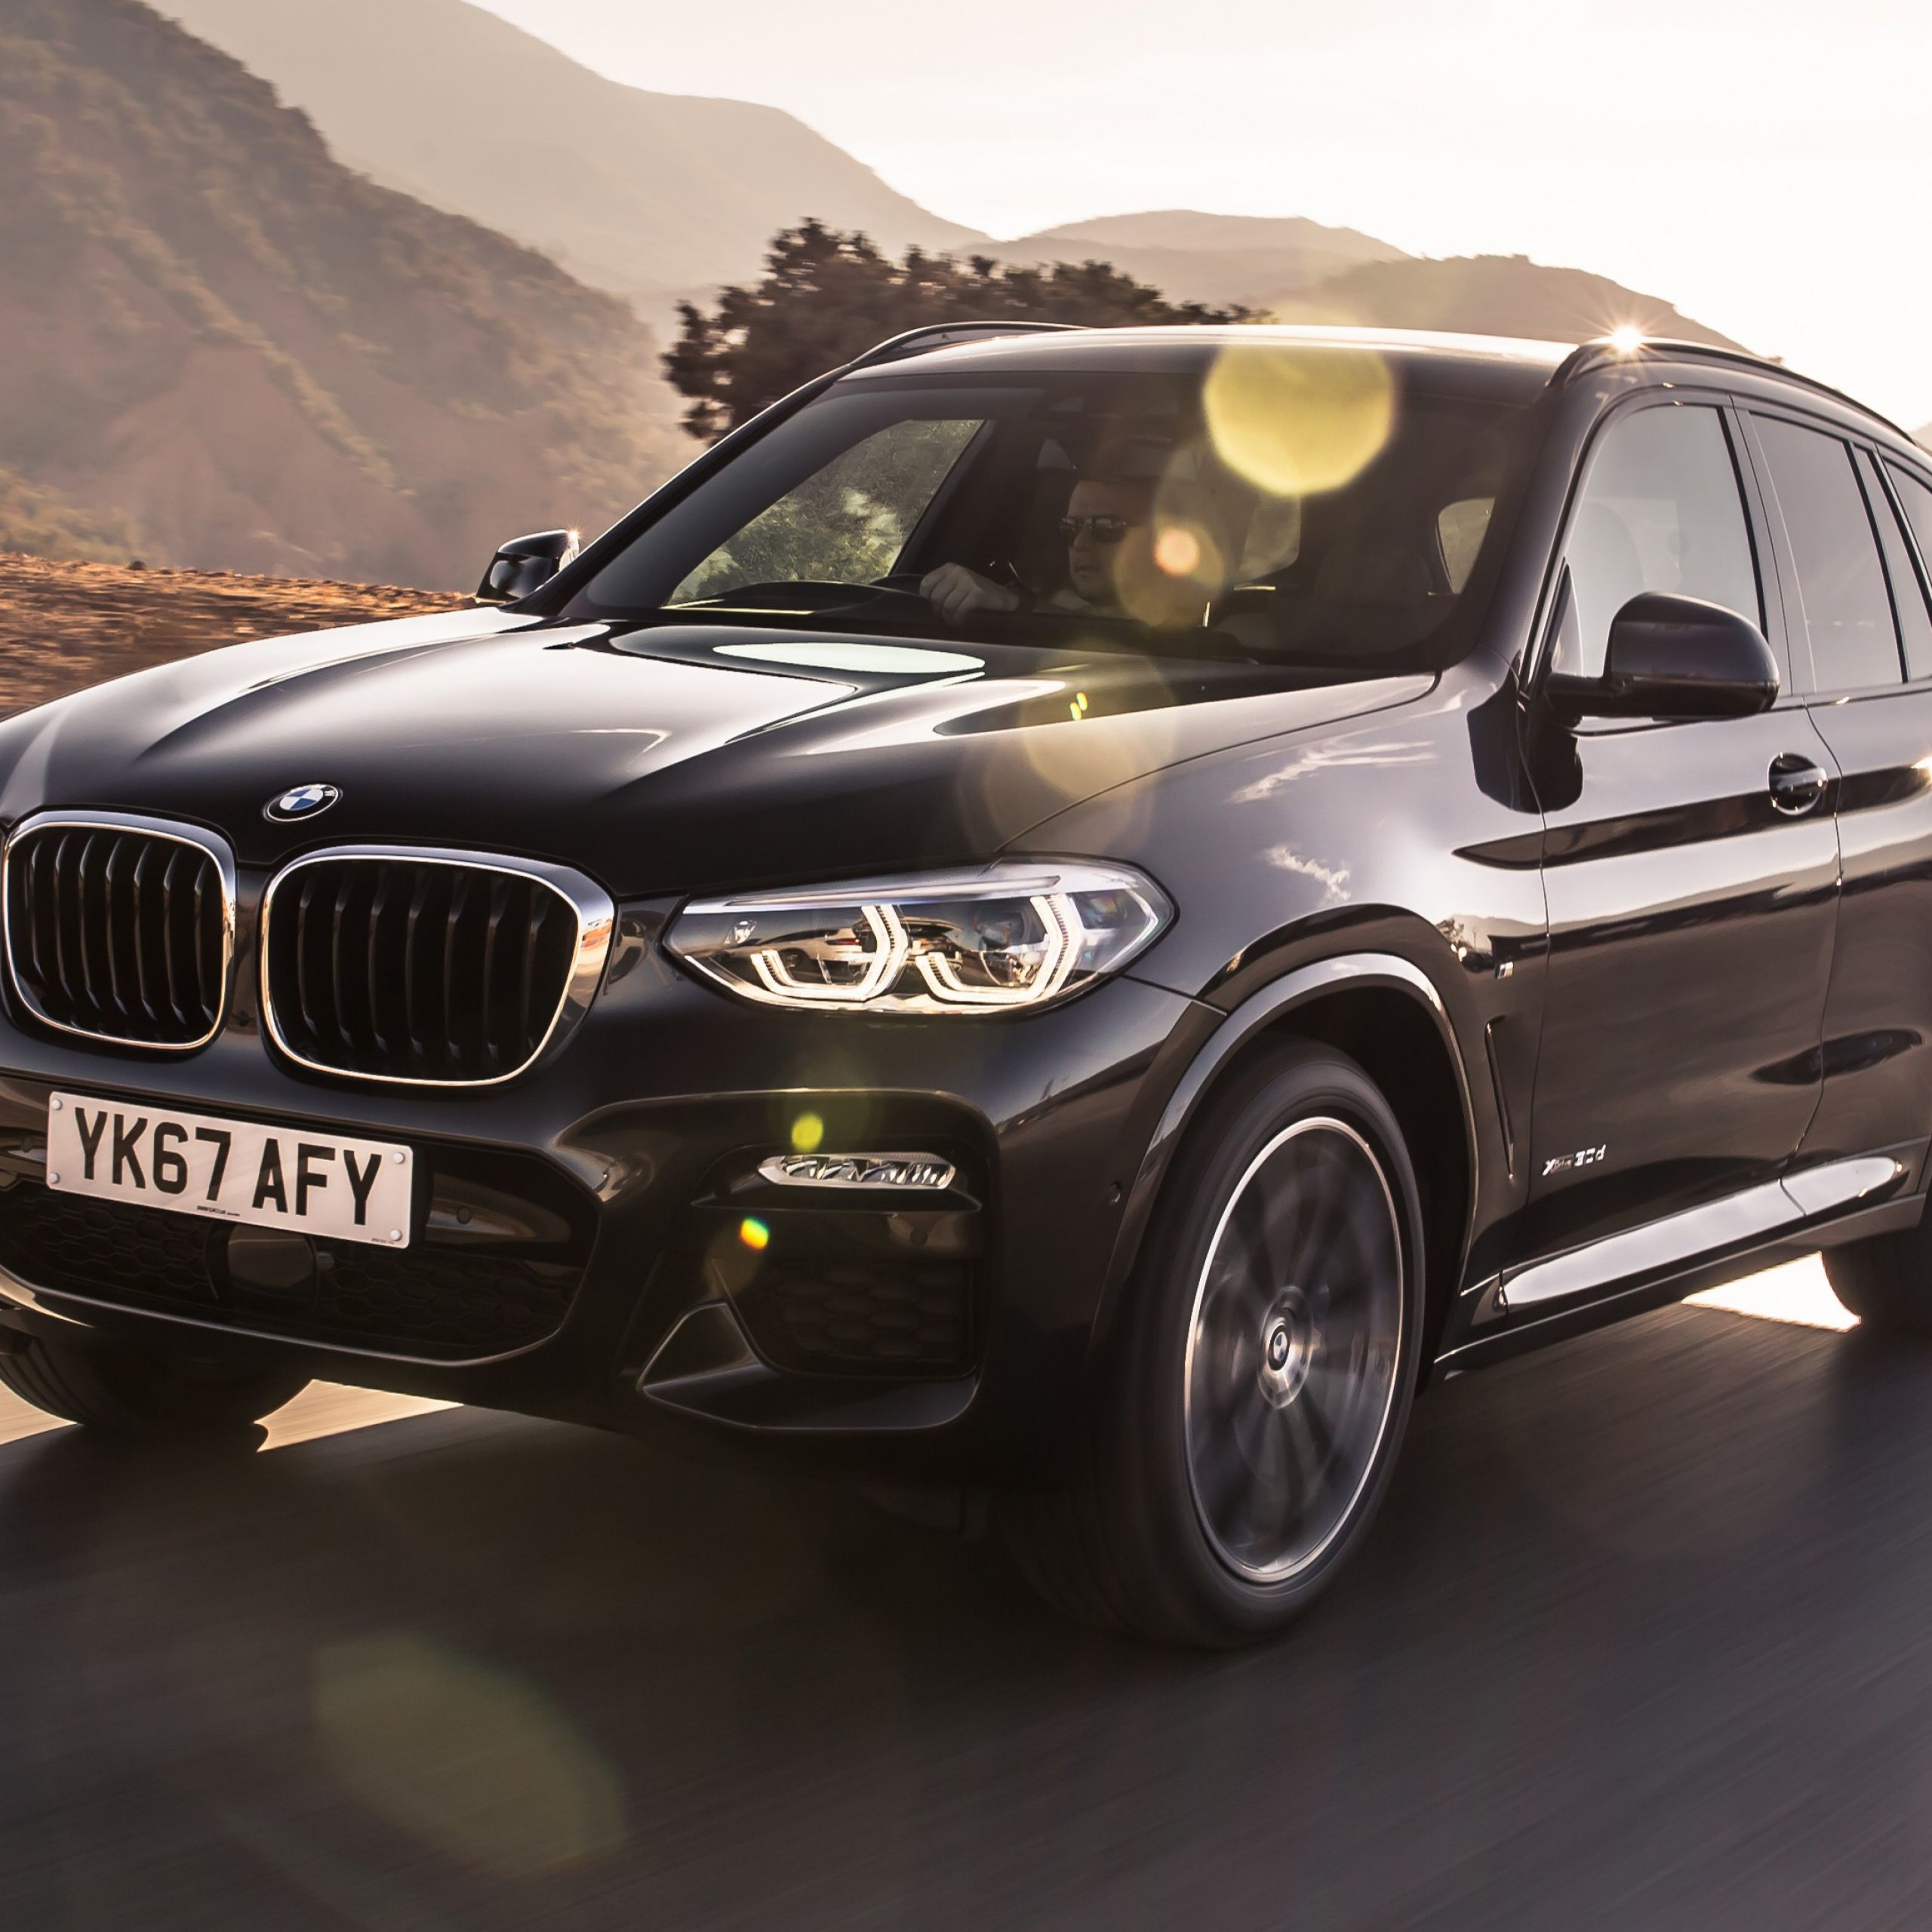 Good Car Websites Buy Used Cars Inspirational Bmw X3 3 0d Review 261bhp Suv Tested